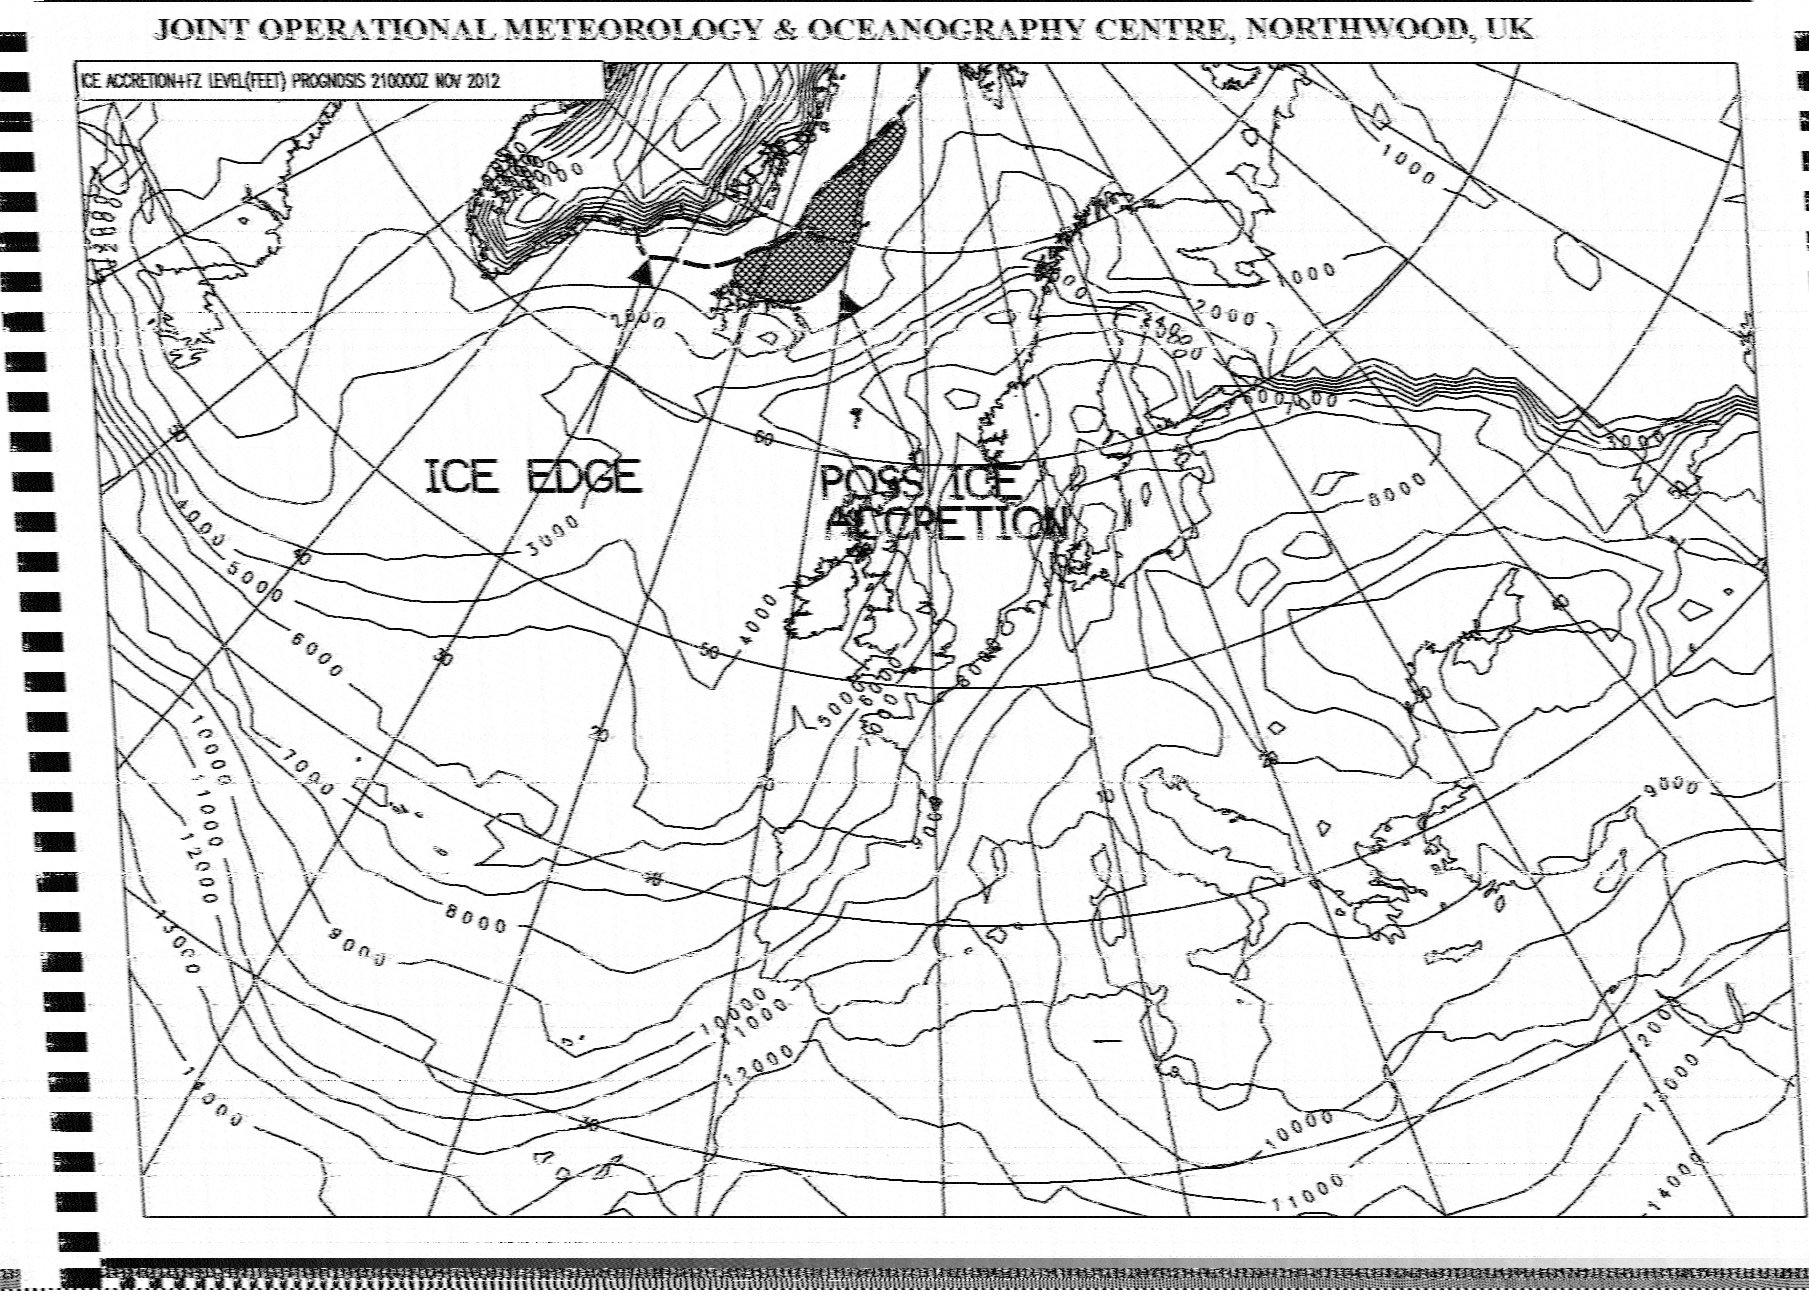 Typical HF weather fax image received using JRC NRD-525